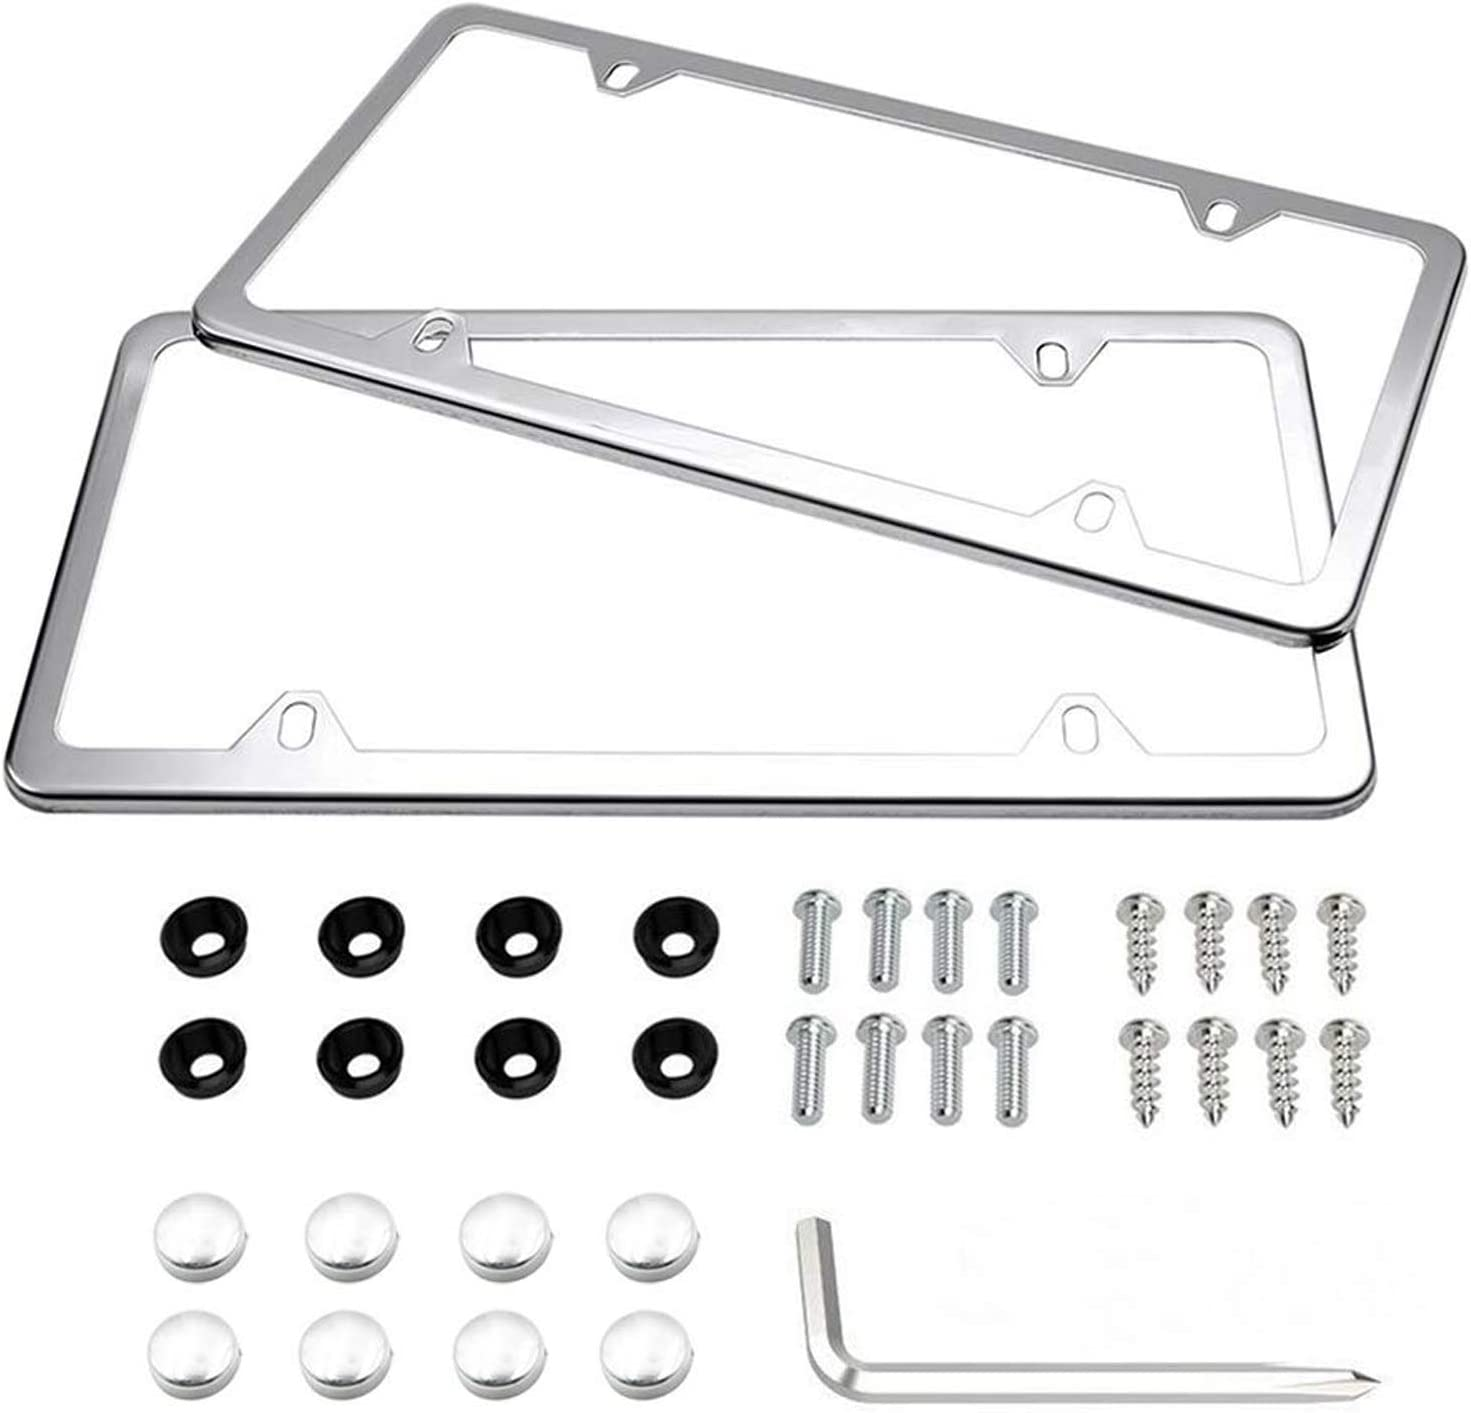 License Plate Frames, Indeebuy 2 Pcs 4 Holes Slim Stainless Steel Polish Mirror License Plate Frame and Chrome Screw Caps